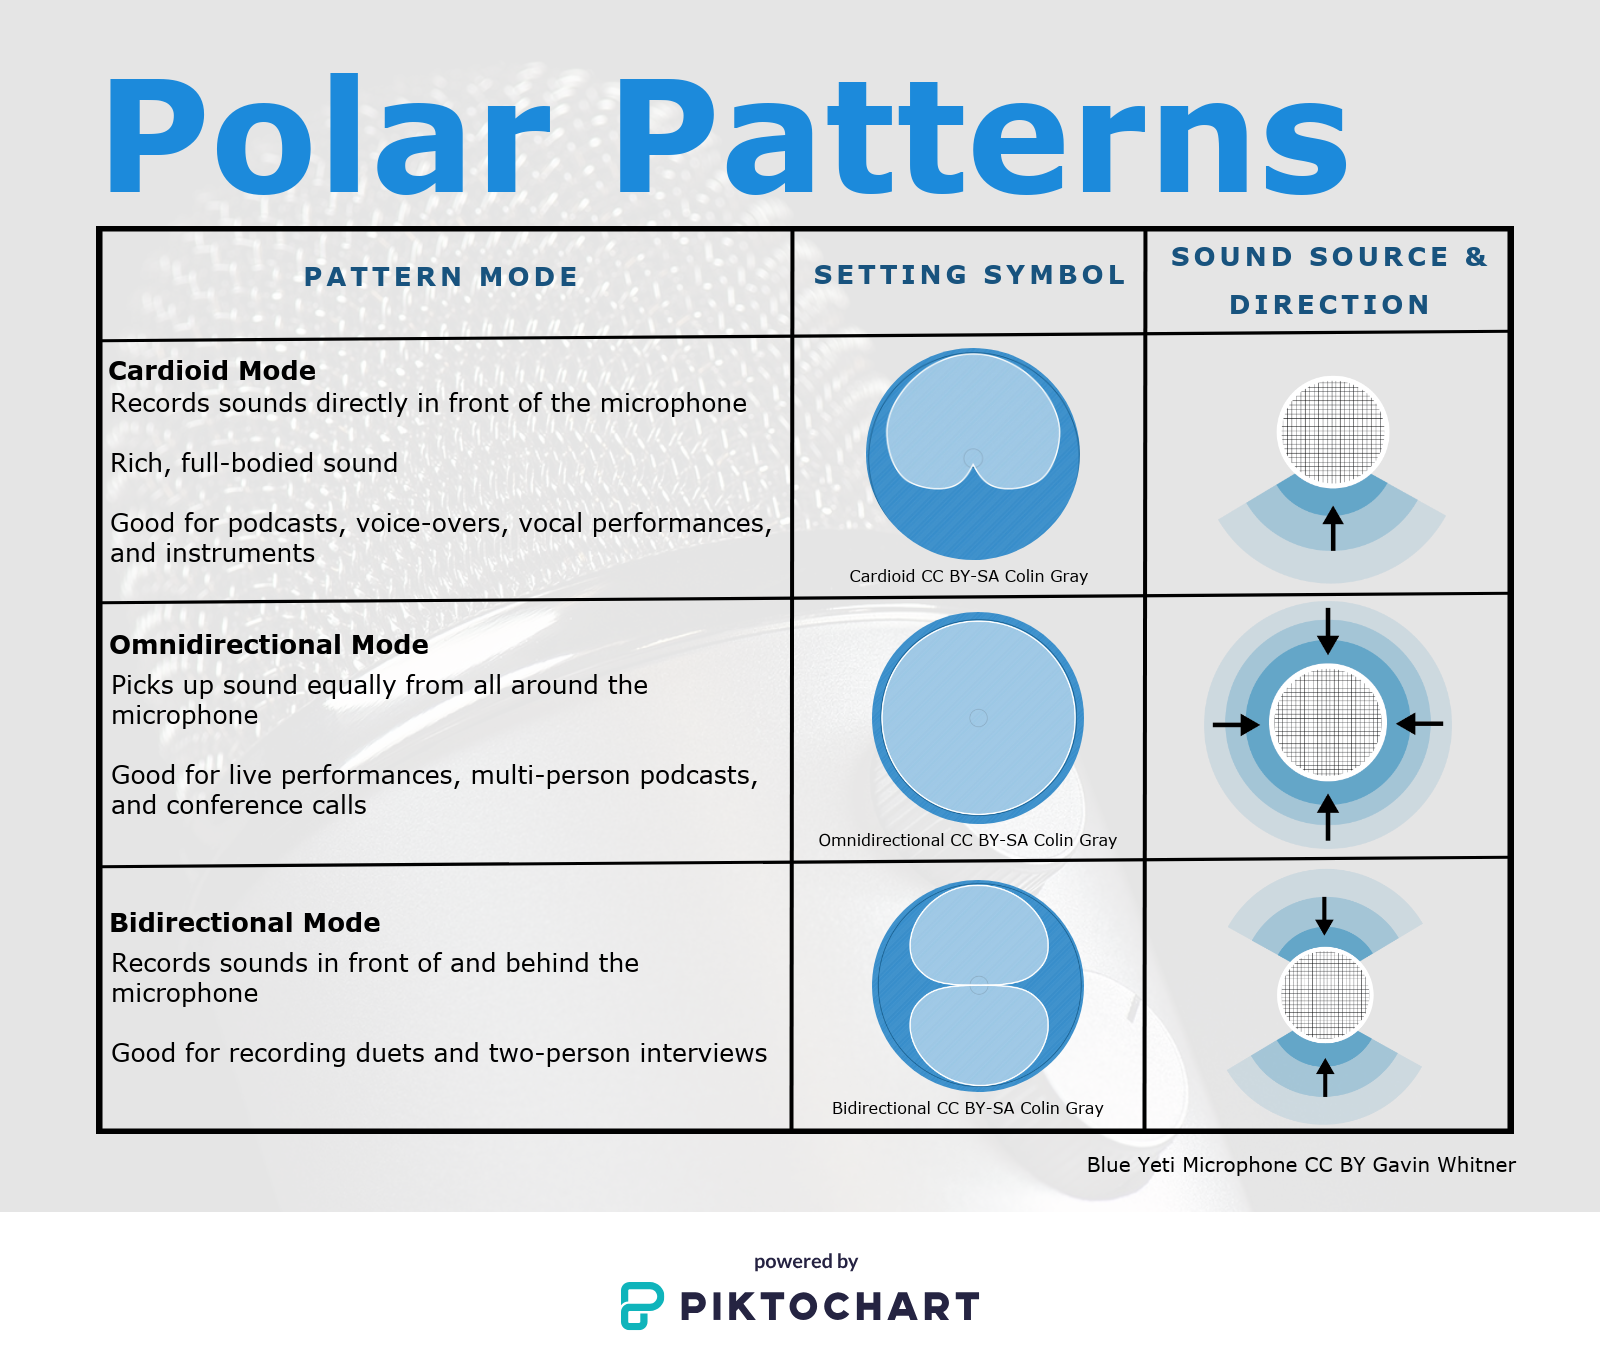 Polar Patterns chart